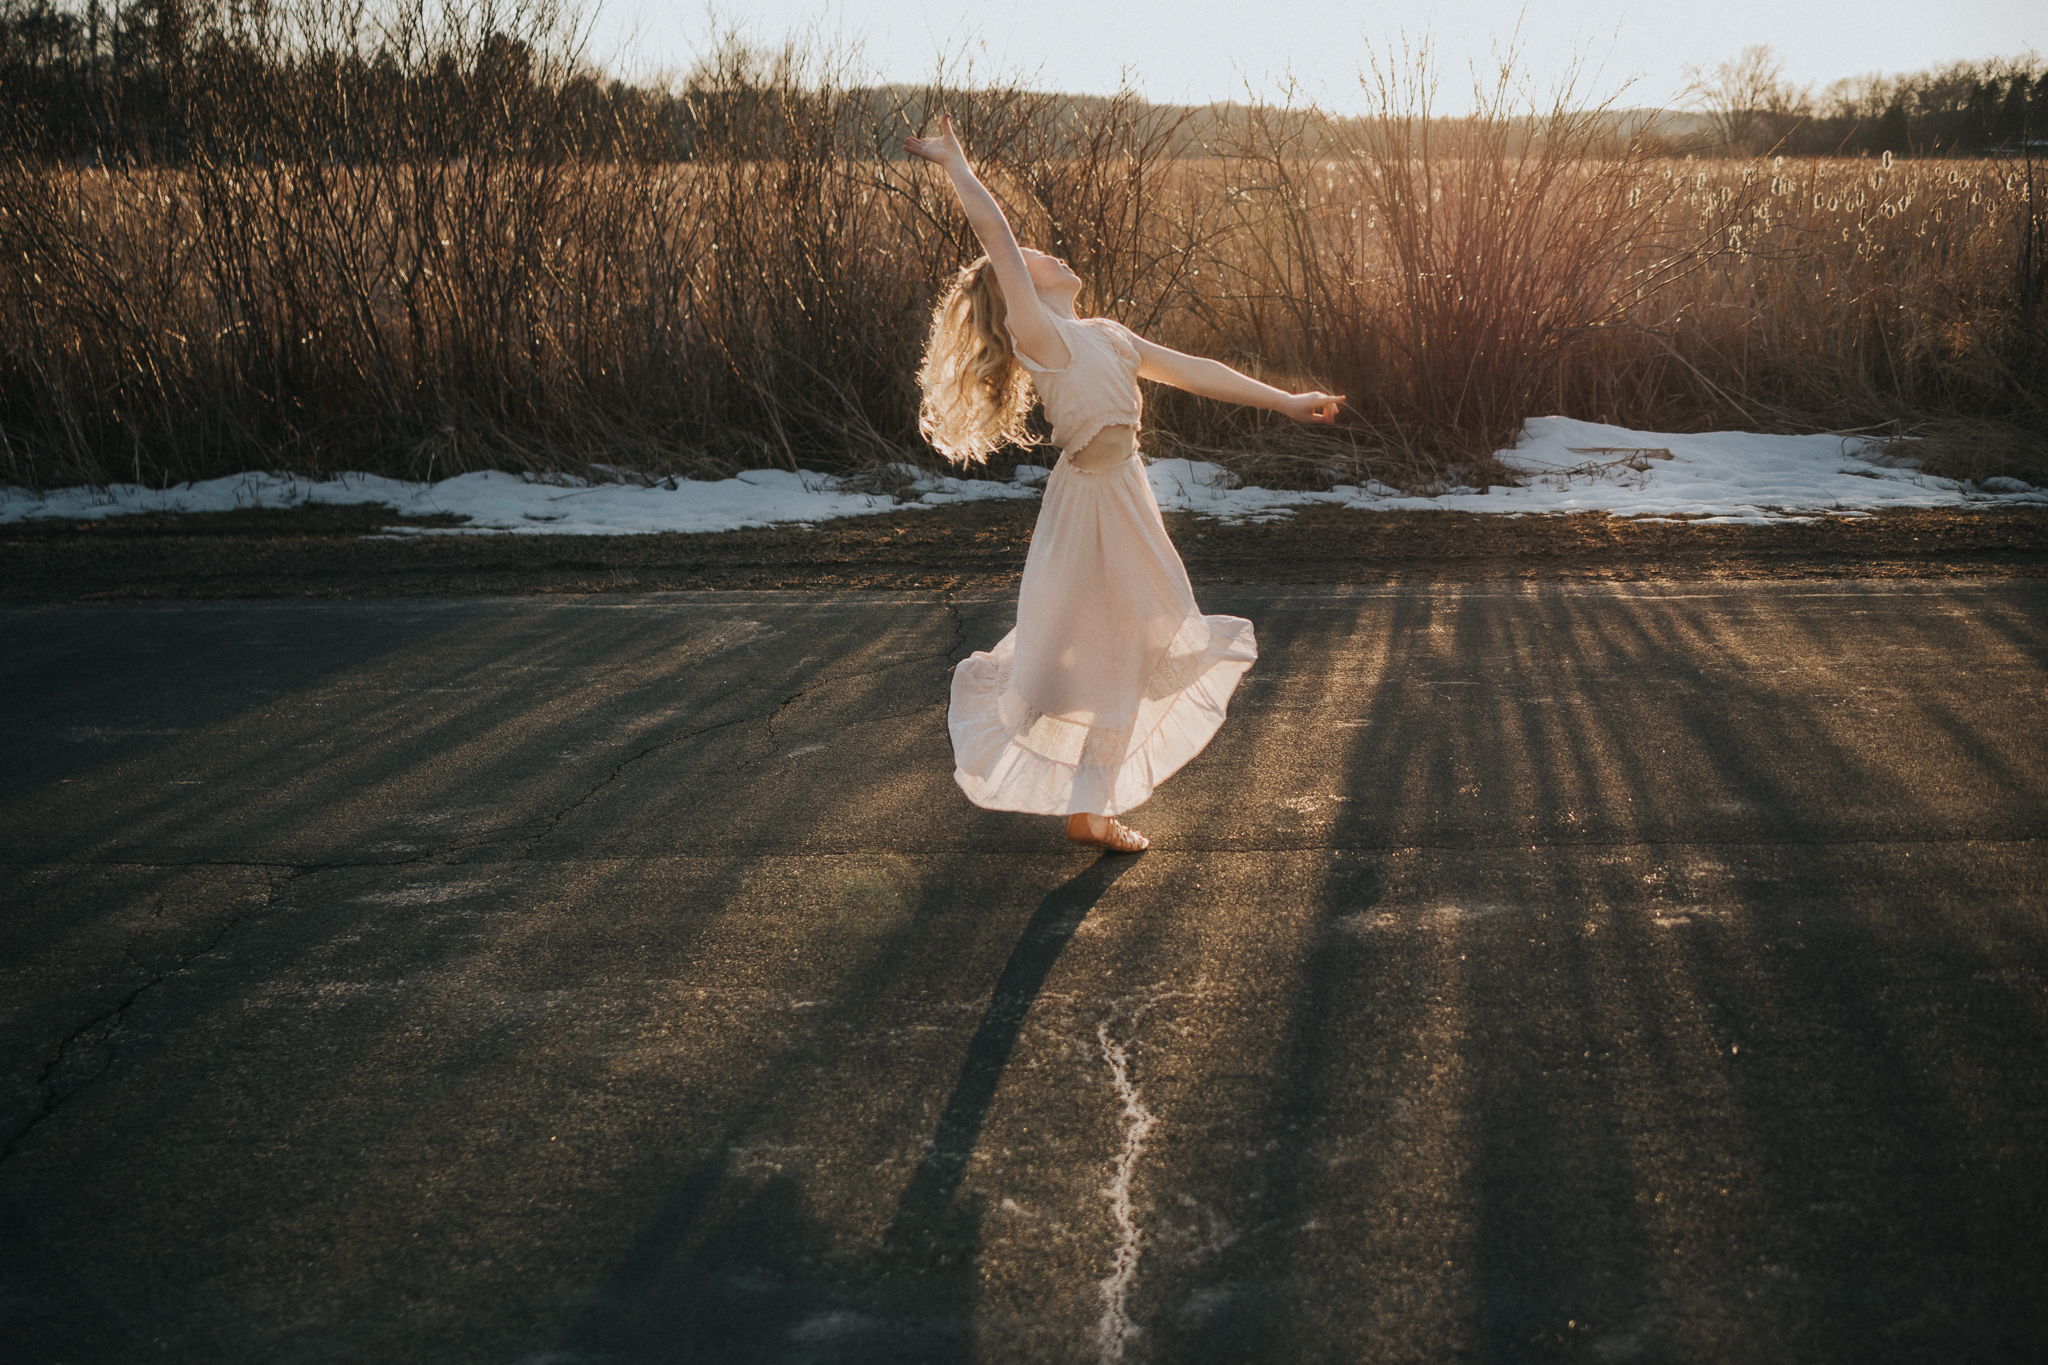 ballerina dancing in the sunlight on a country road - Minnesota Family Photographer